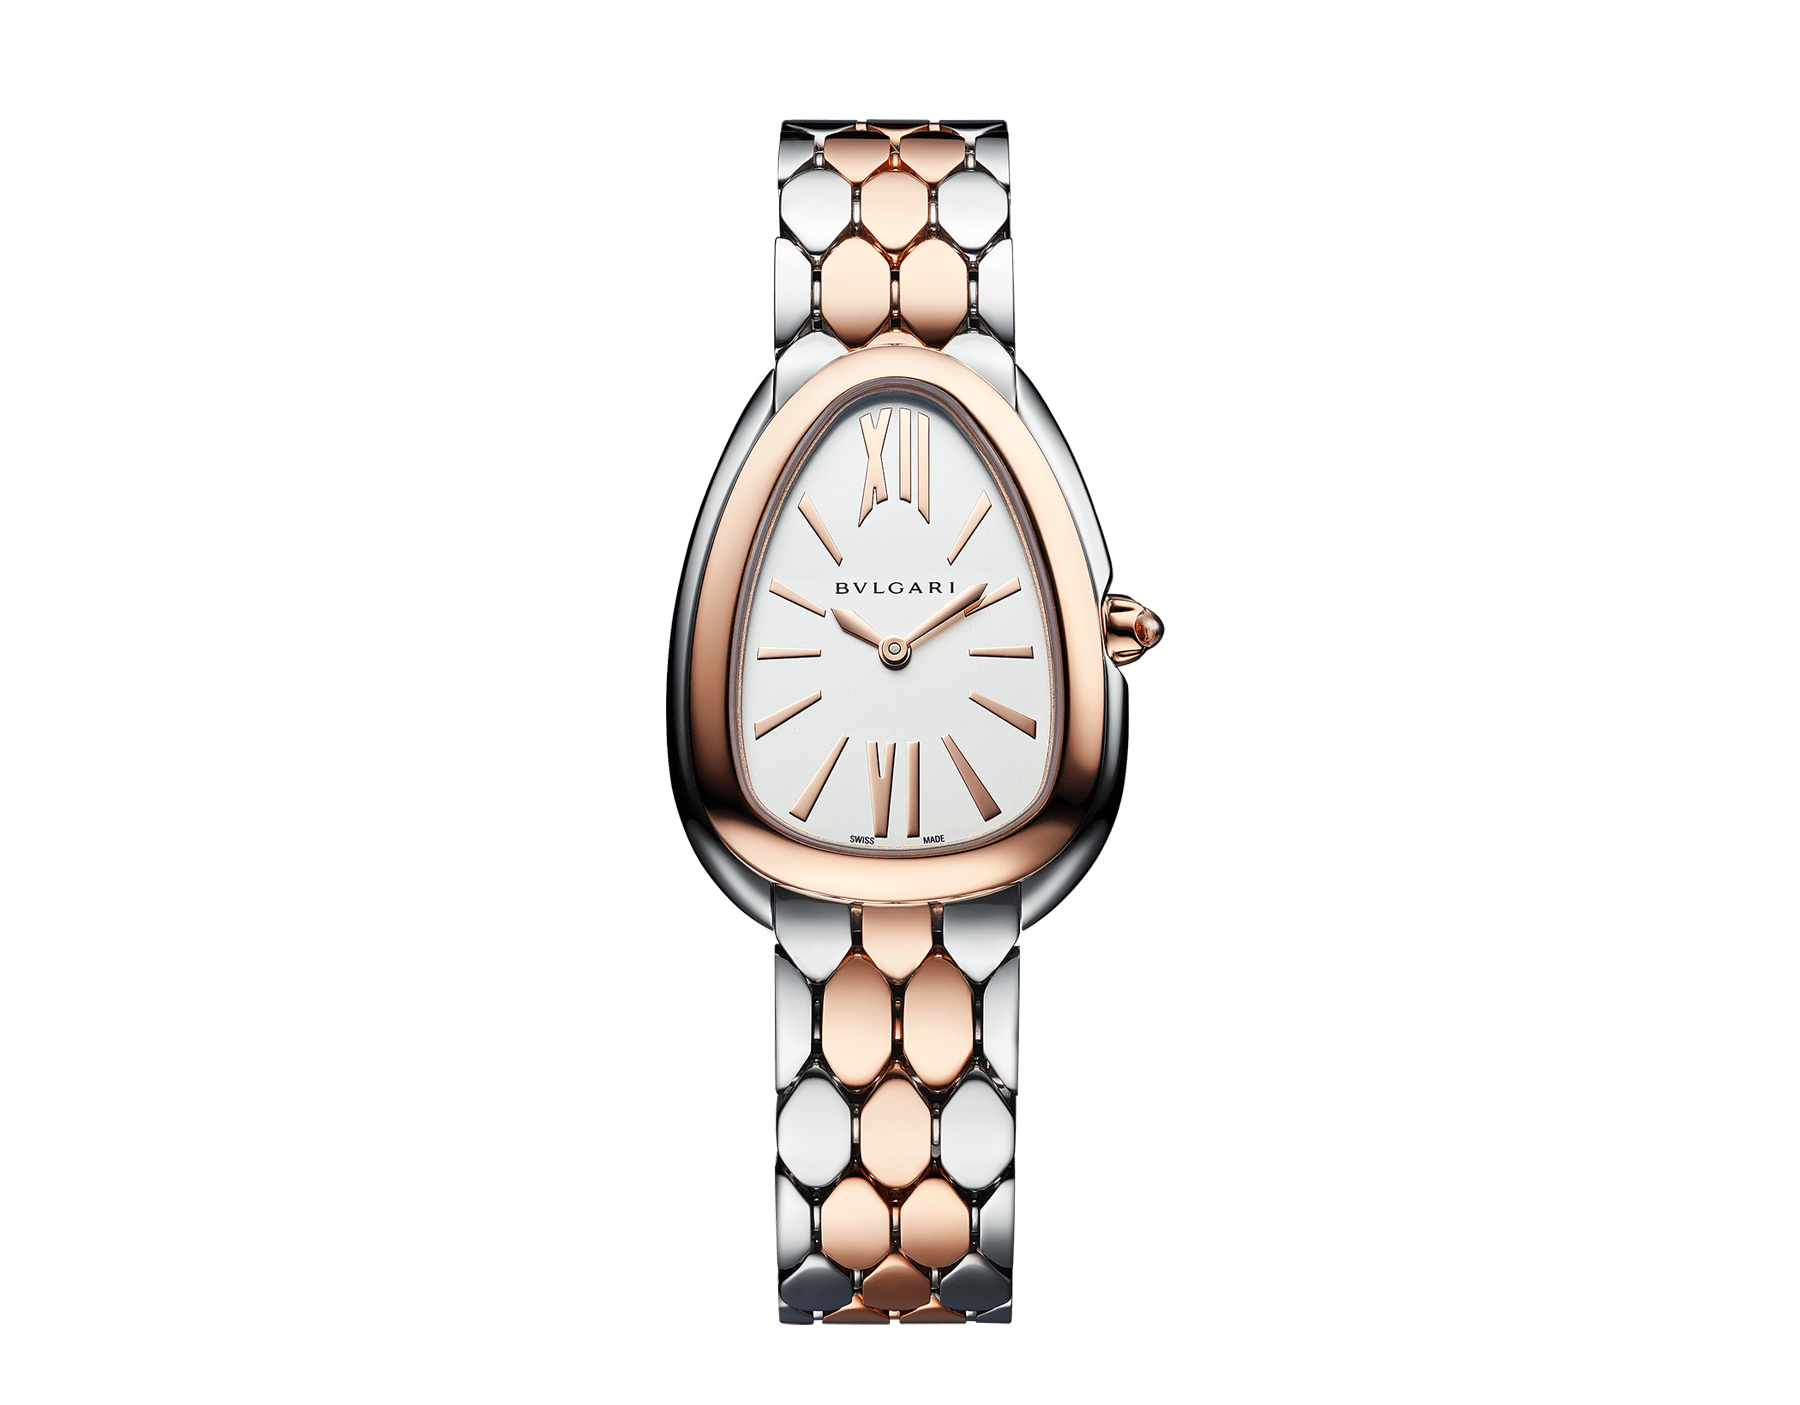 NEW SERPENTI SEDUTTORI WATCH